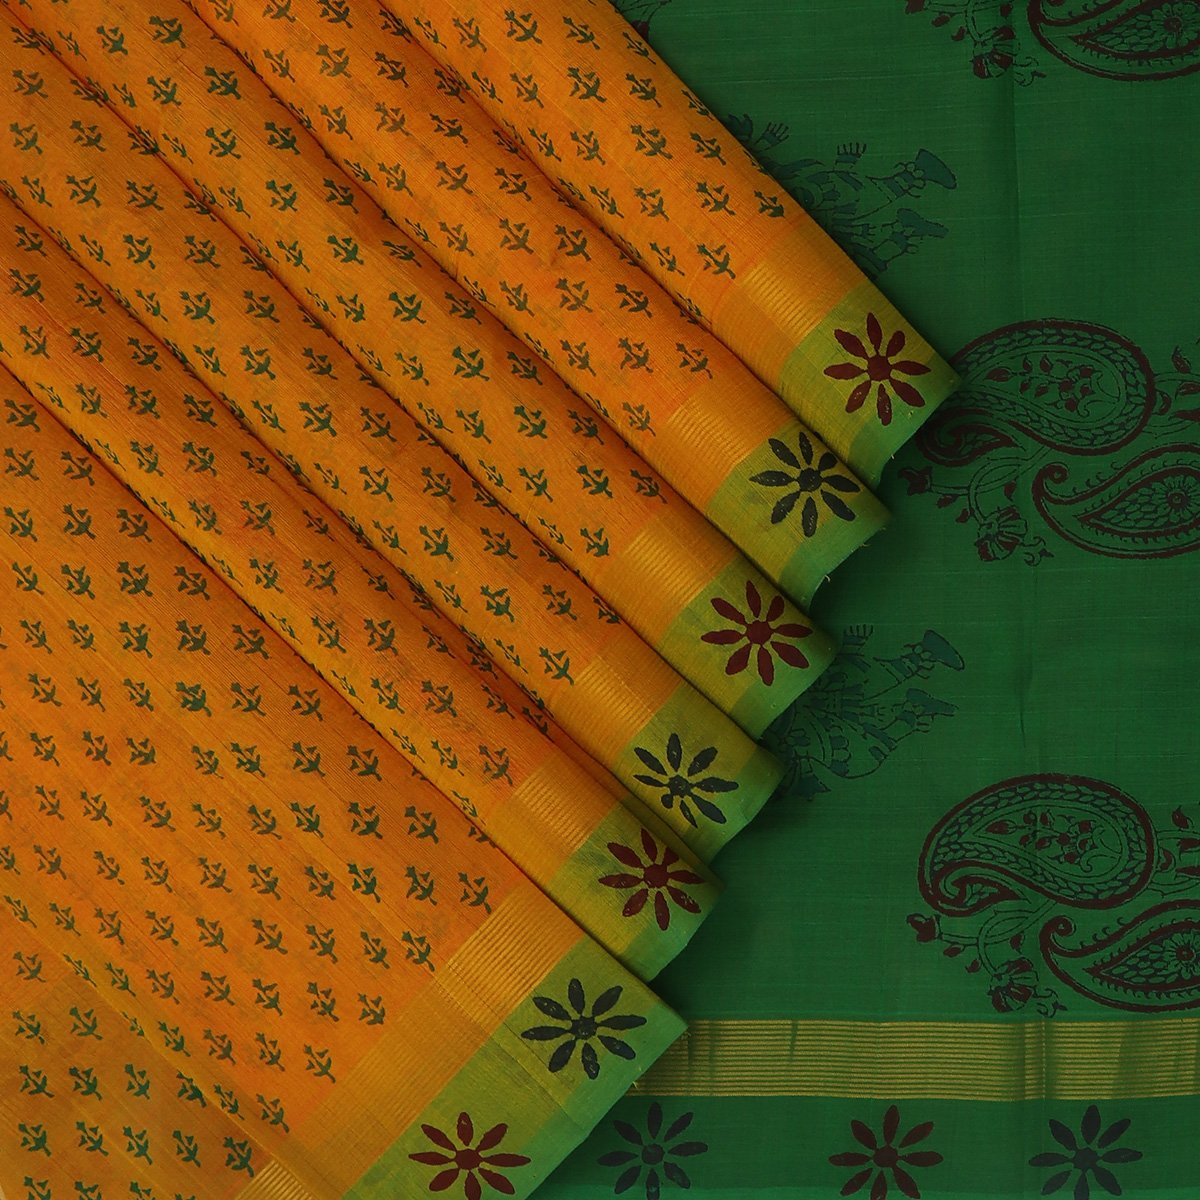 Printed Silk Cotton Saree Honey Color and Green with Simple Flower border